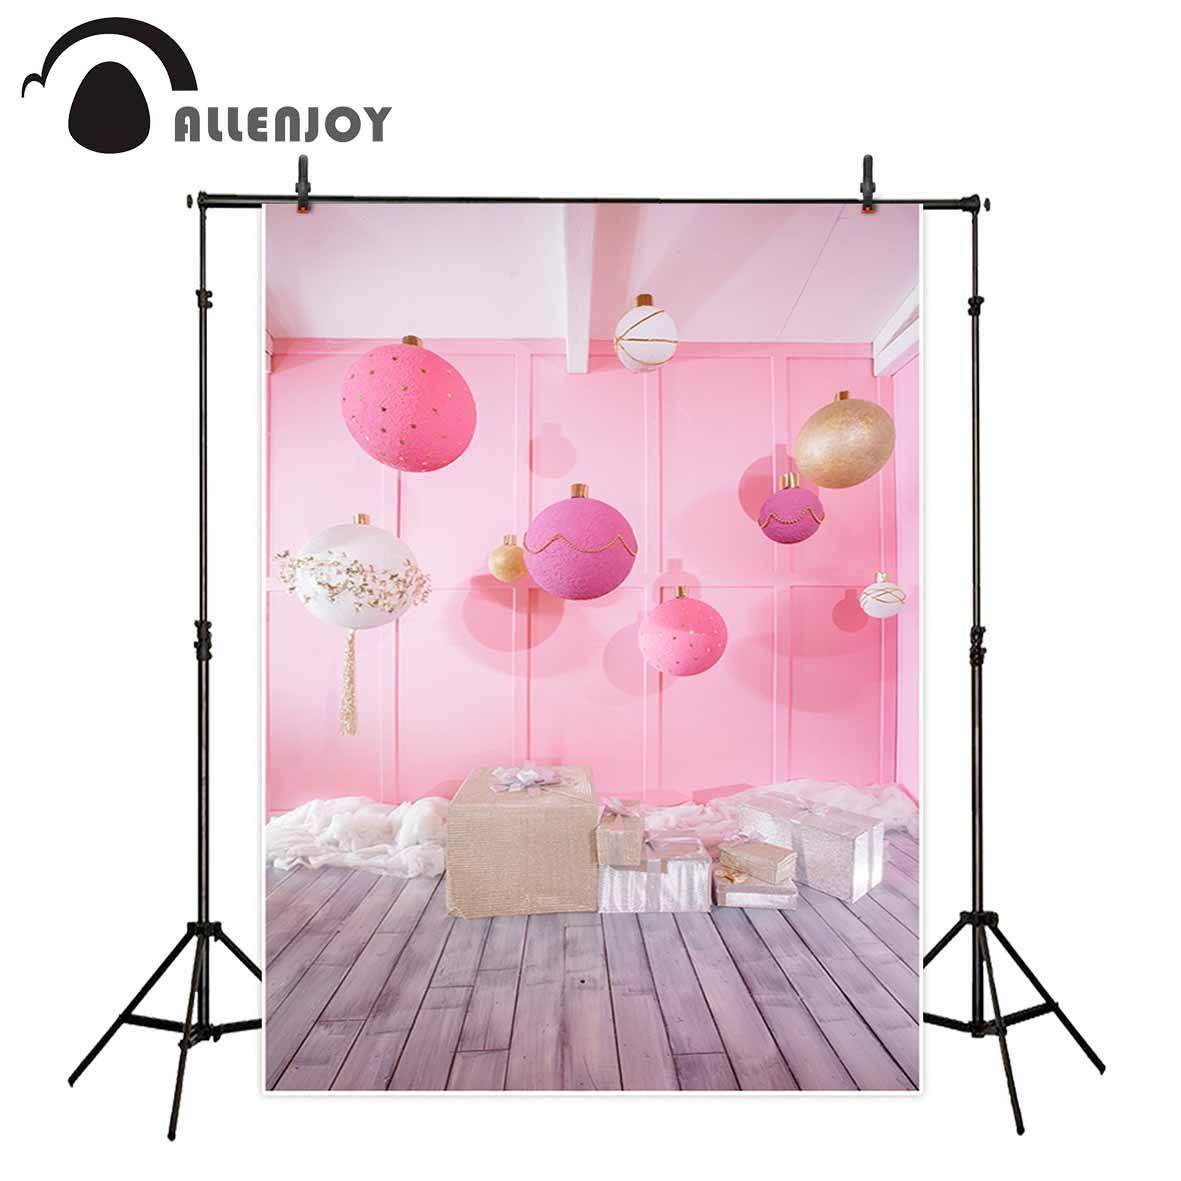 Allenjoy birthday wedding Valentine party photography backdrop colourful balloons floor indoor personal custom photo background love photography backdrop scenery custom photo portrait studios background valentine s day backdrop f 2908